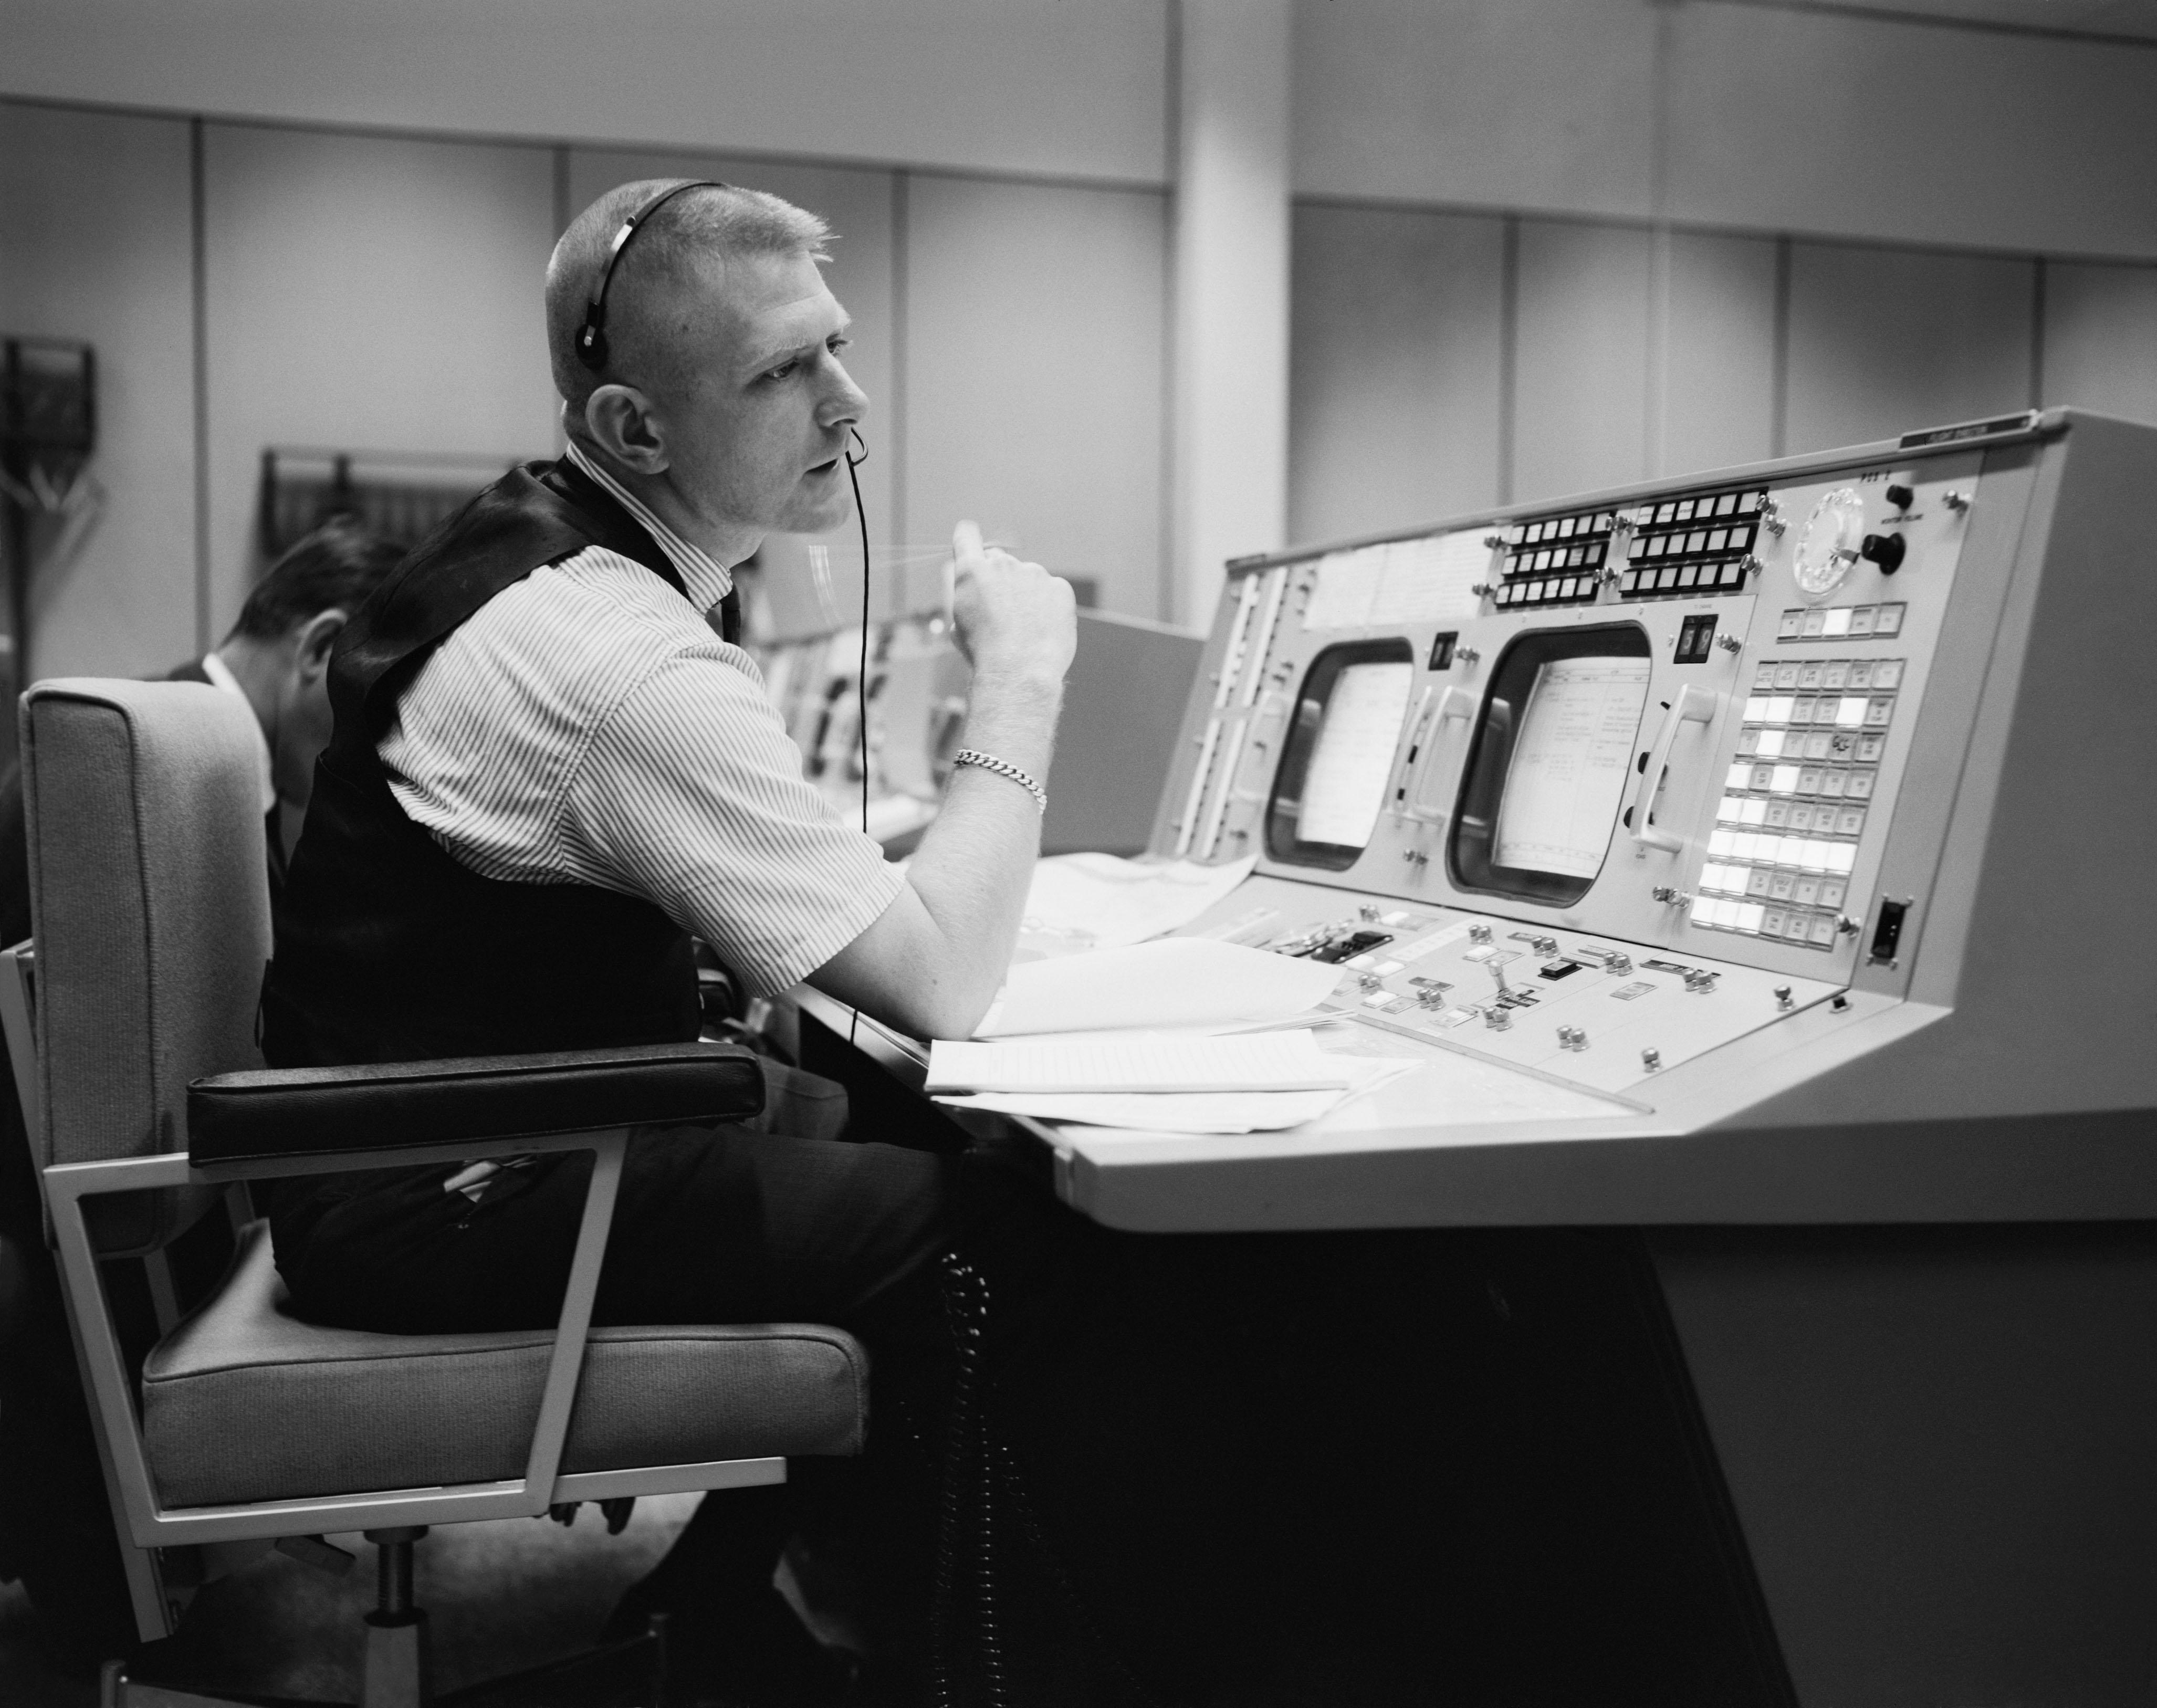 Eugene F. Kranz at his console at the NASA Mission Control Center